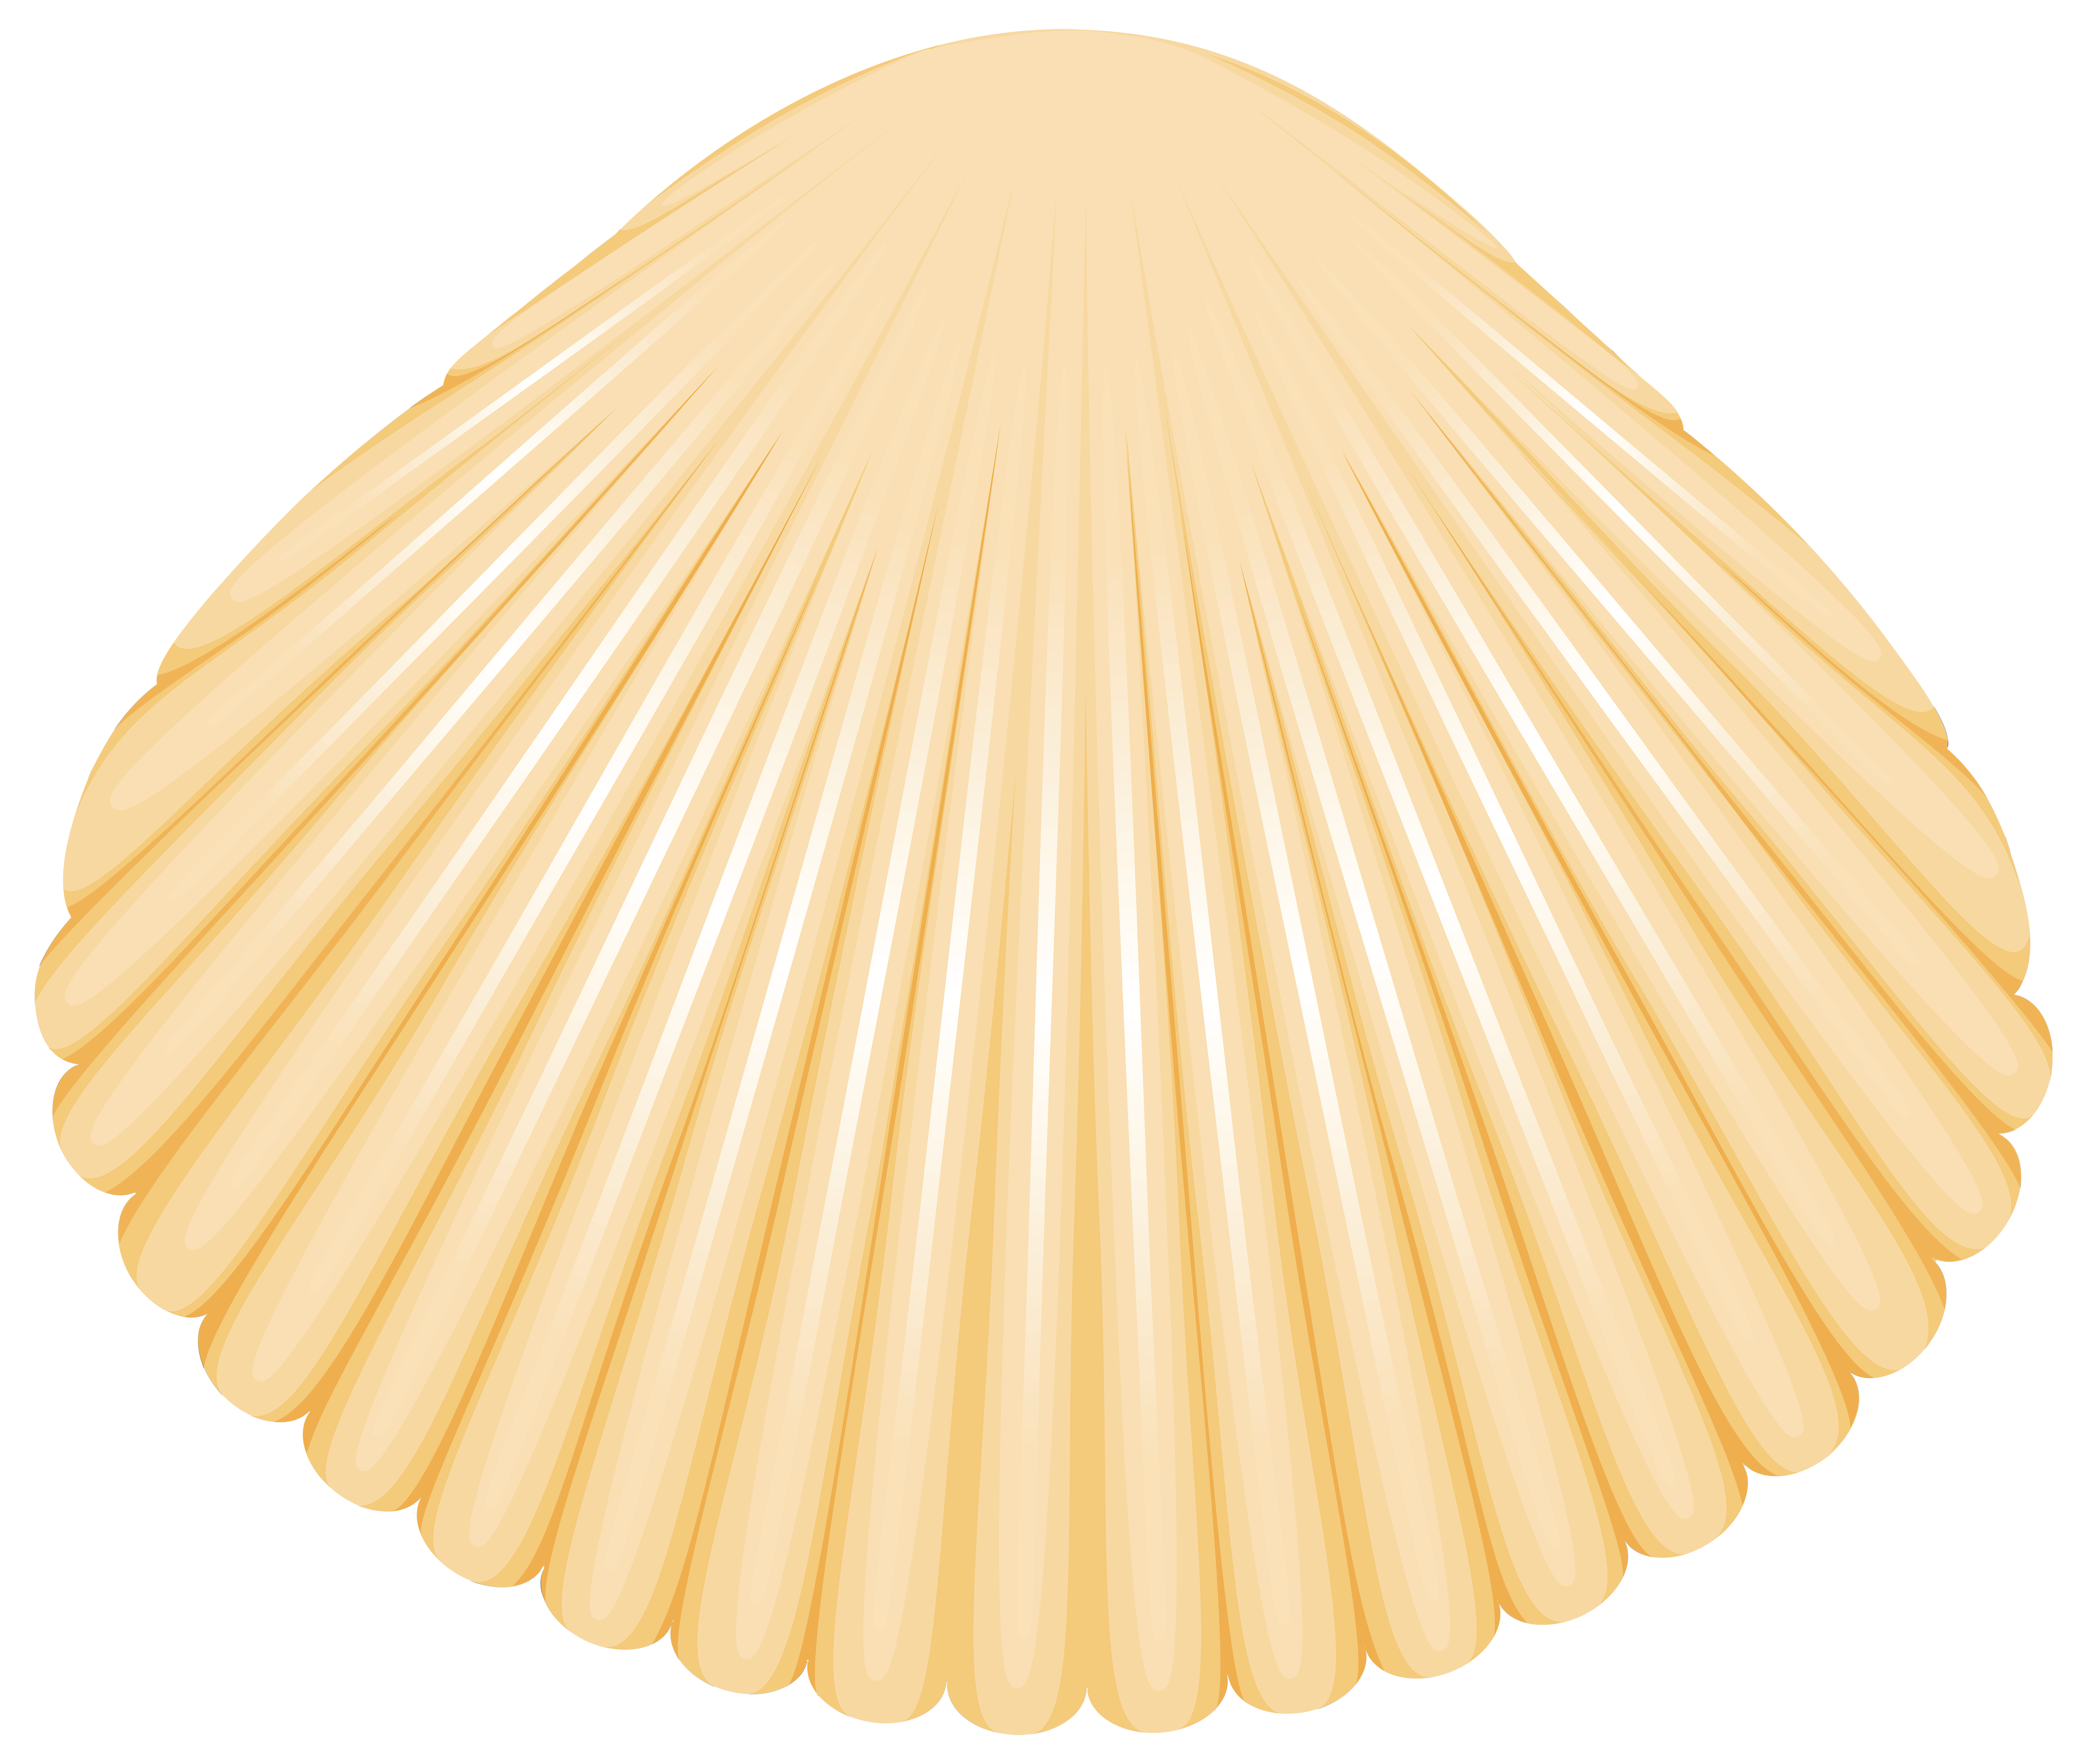 clipart black and white Clam clipart. Shell png clip art.